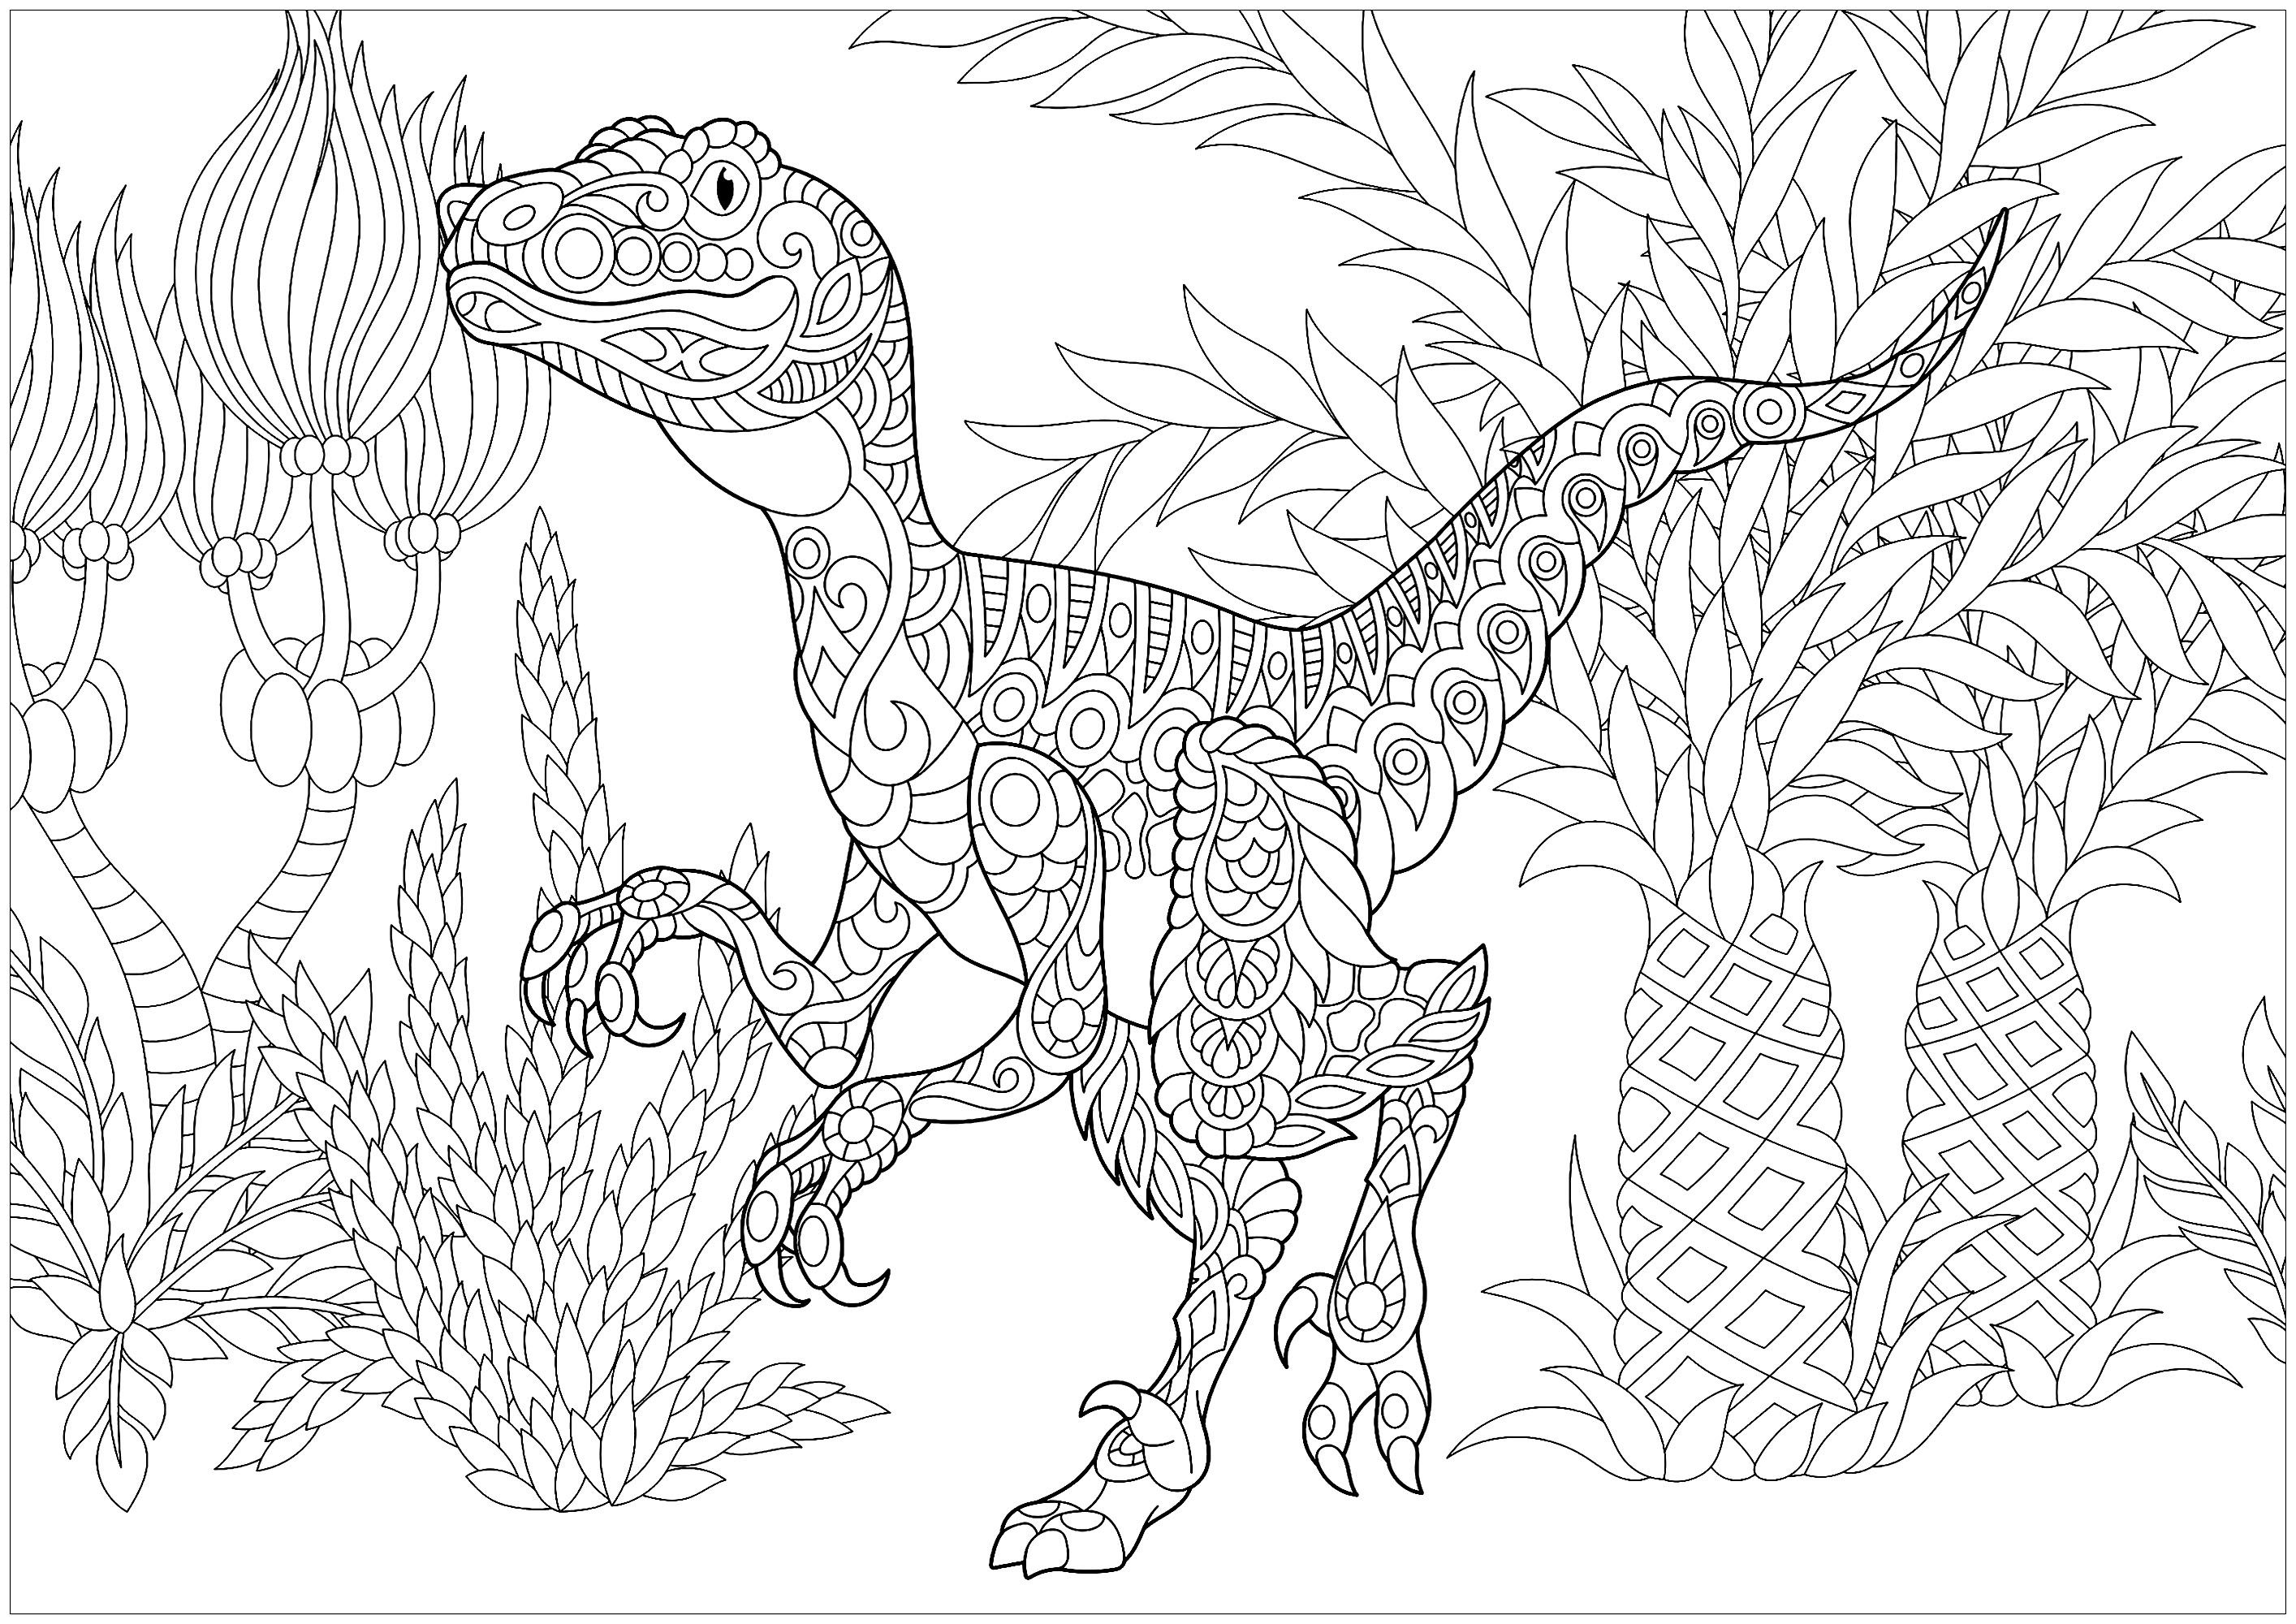 Velociraptor Dinosaurs Coloring Pages for Adults Just